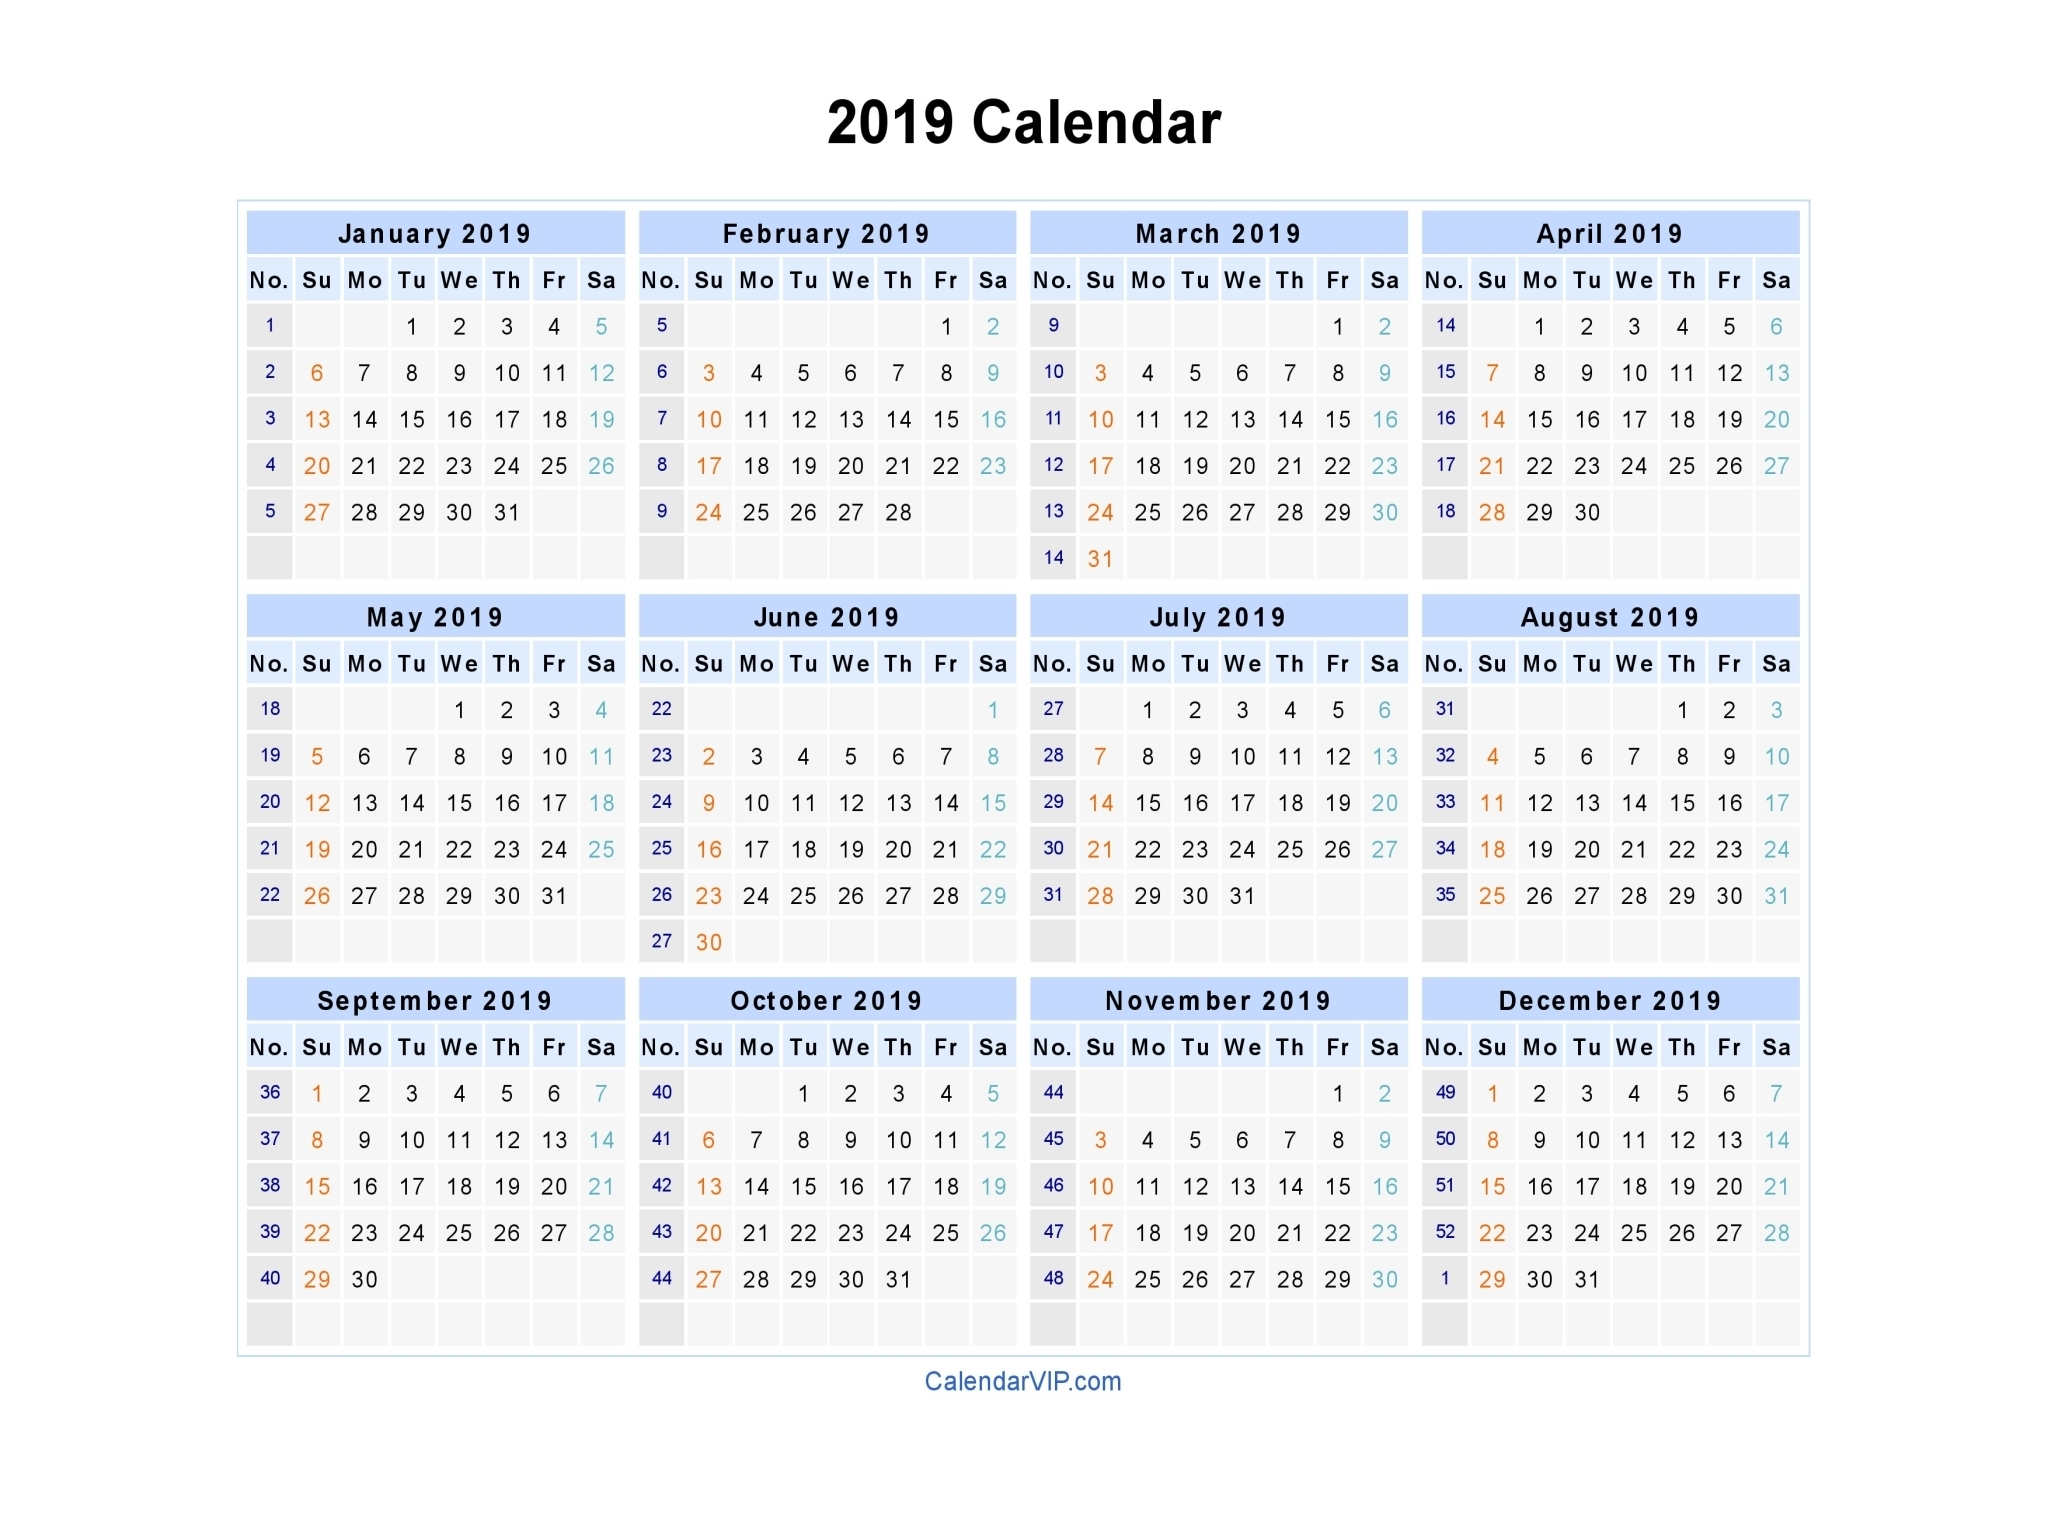 2019 Calendar - Blank Printable Calendar Template In Pdf throughout 2019 - 2023 Calendar Printable